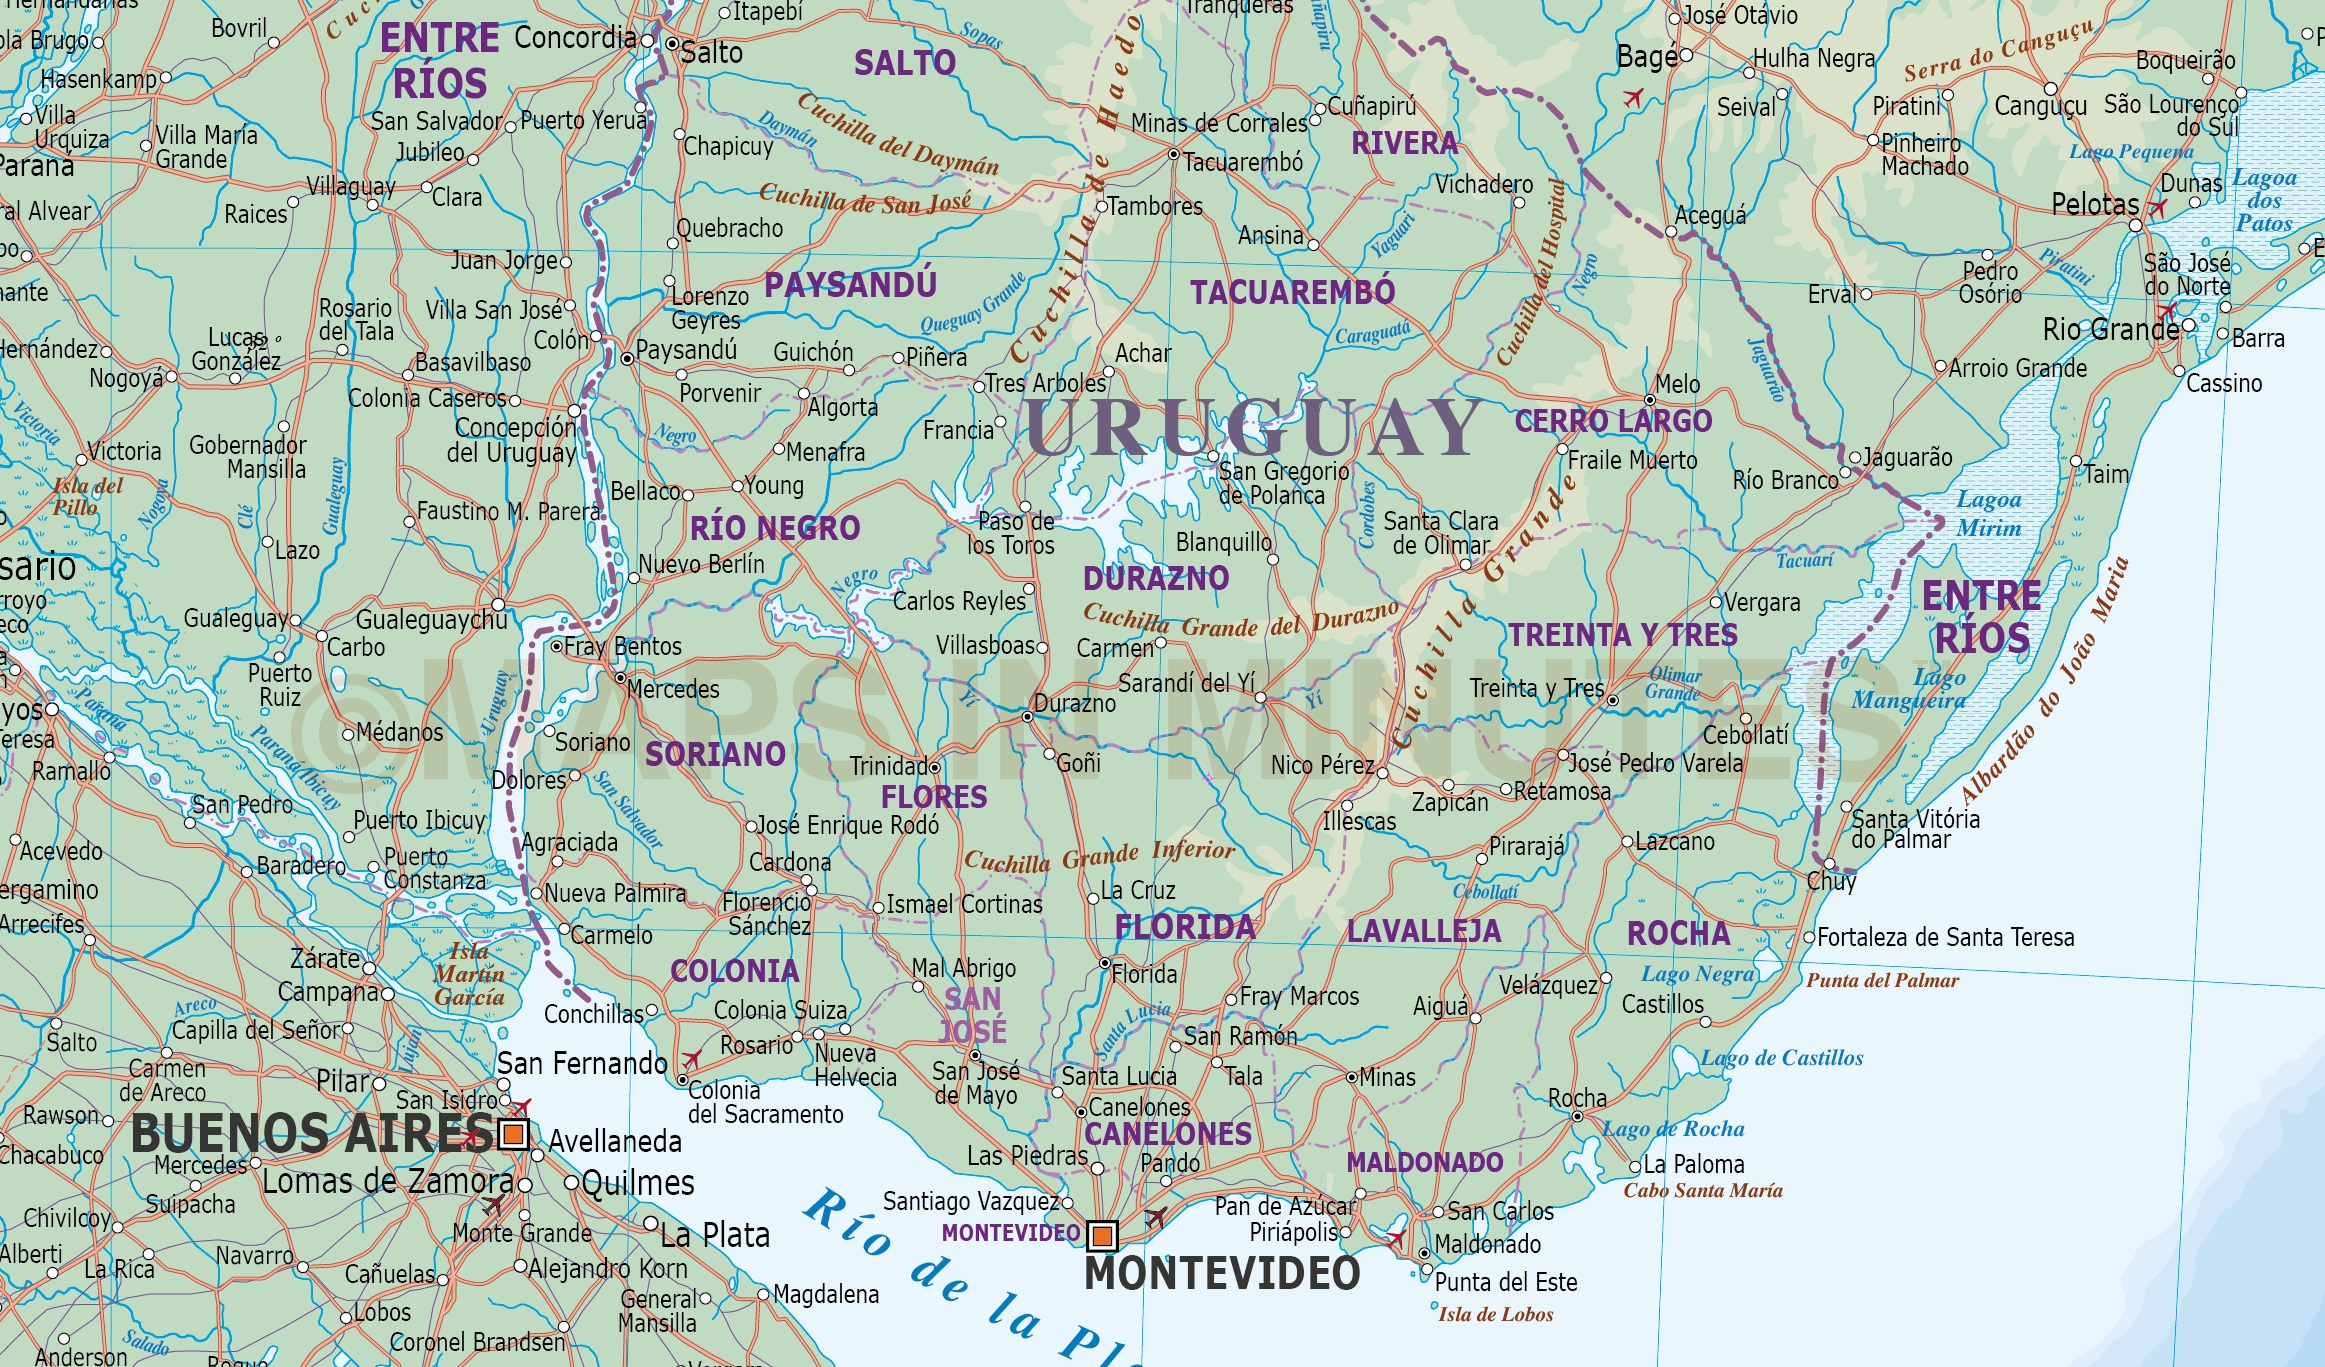 Uruguay digital vector political road rail map with land and